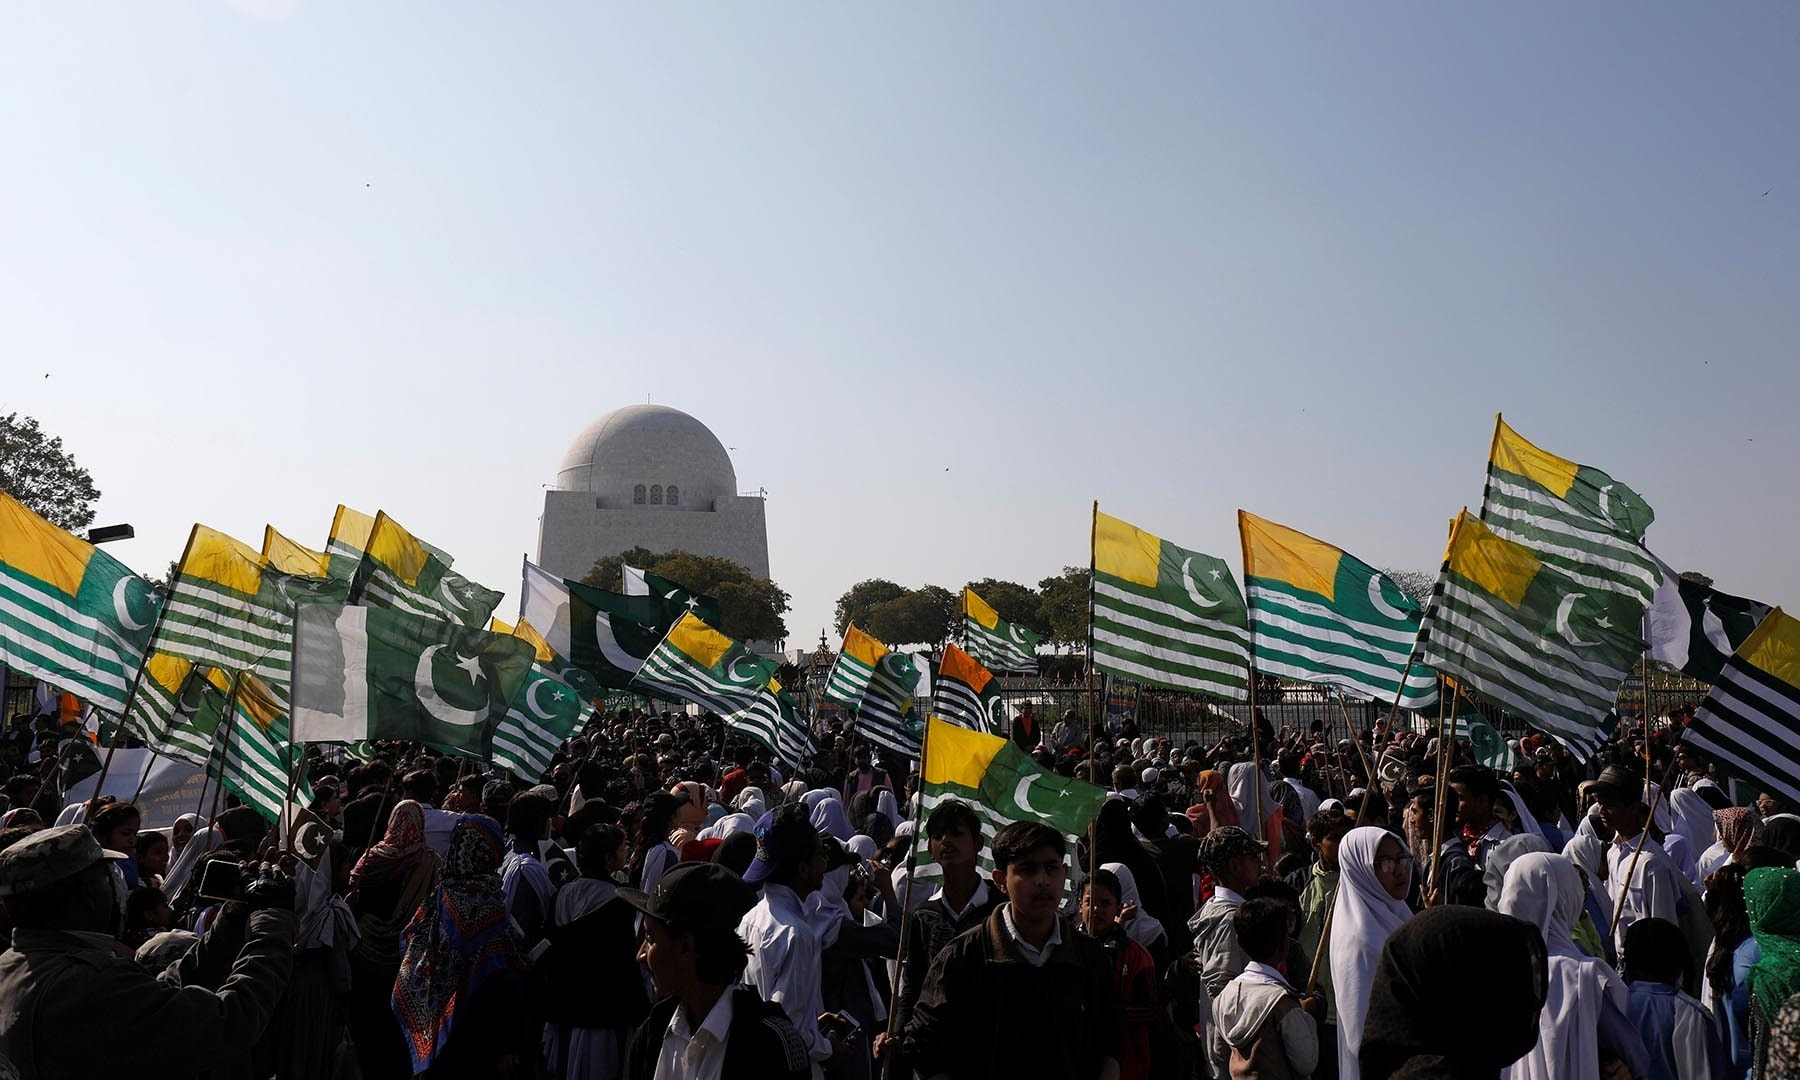 People carry flags as they gather to mark Kashmir Solidarity Day at the mausoleum of Quaid-i-Azam Mohammad Ali Jinnah in Karachi on February 5, 2020. — Reuters